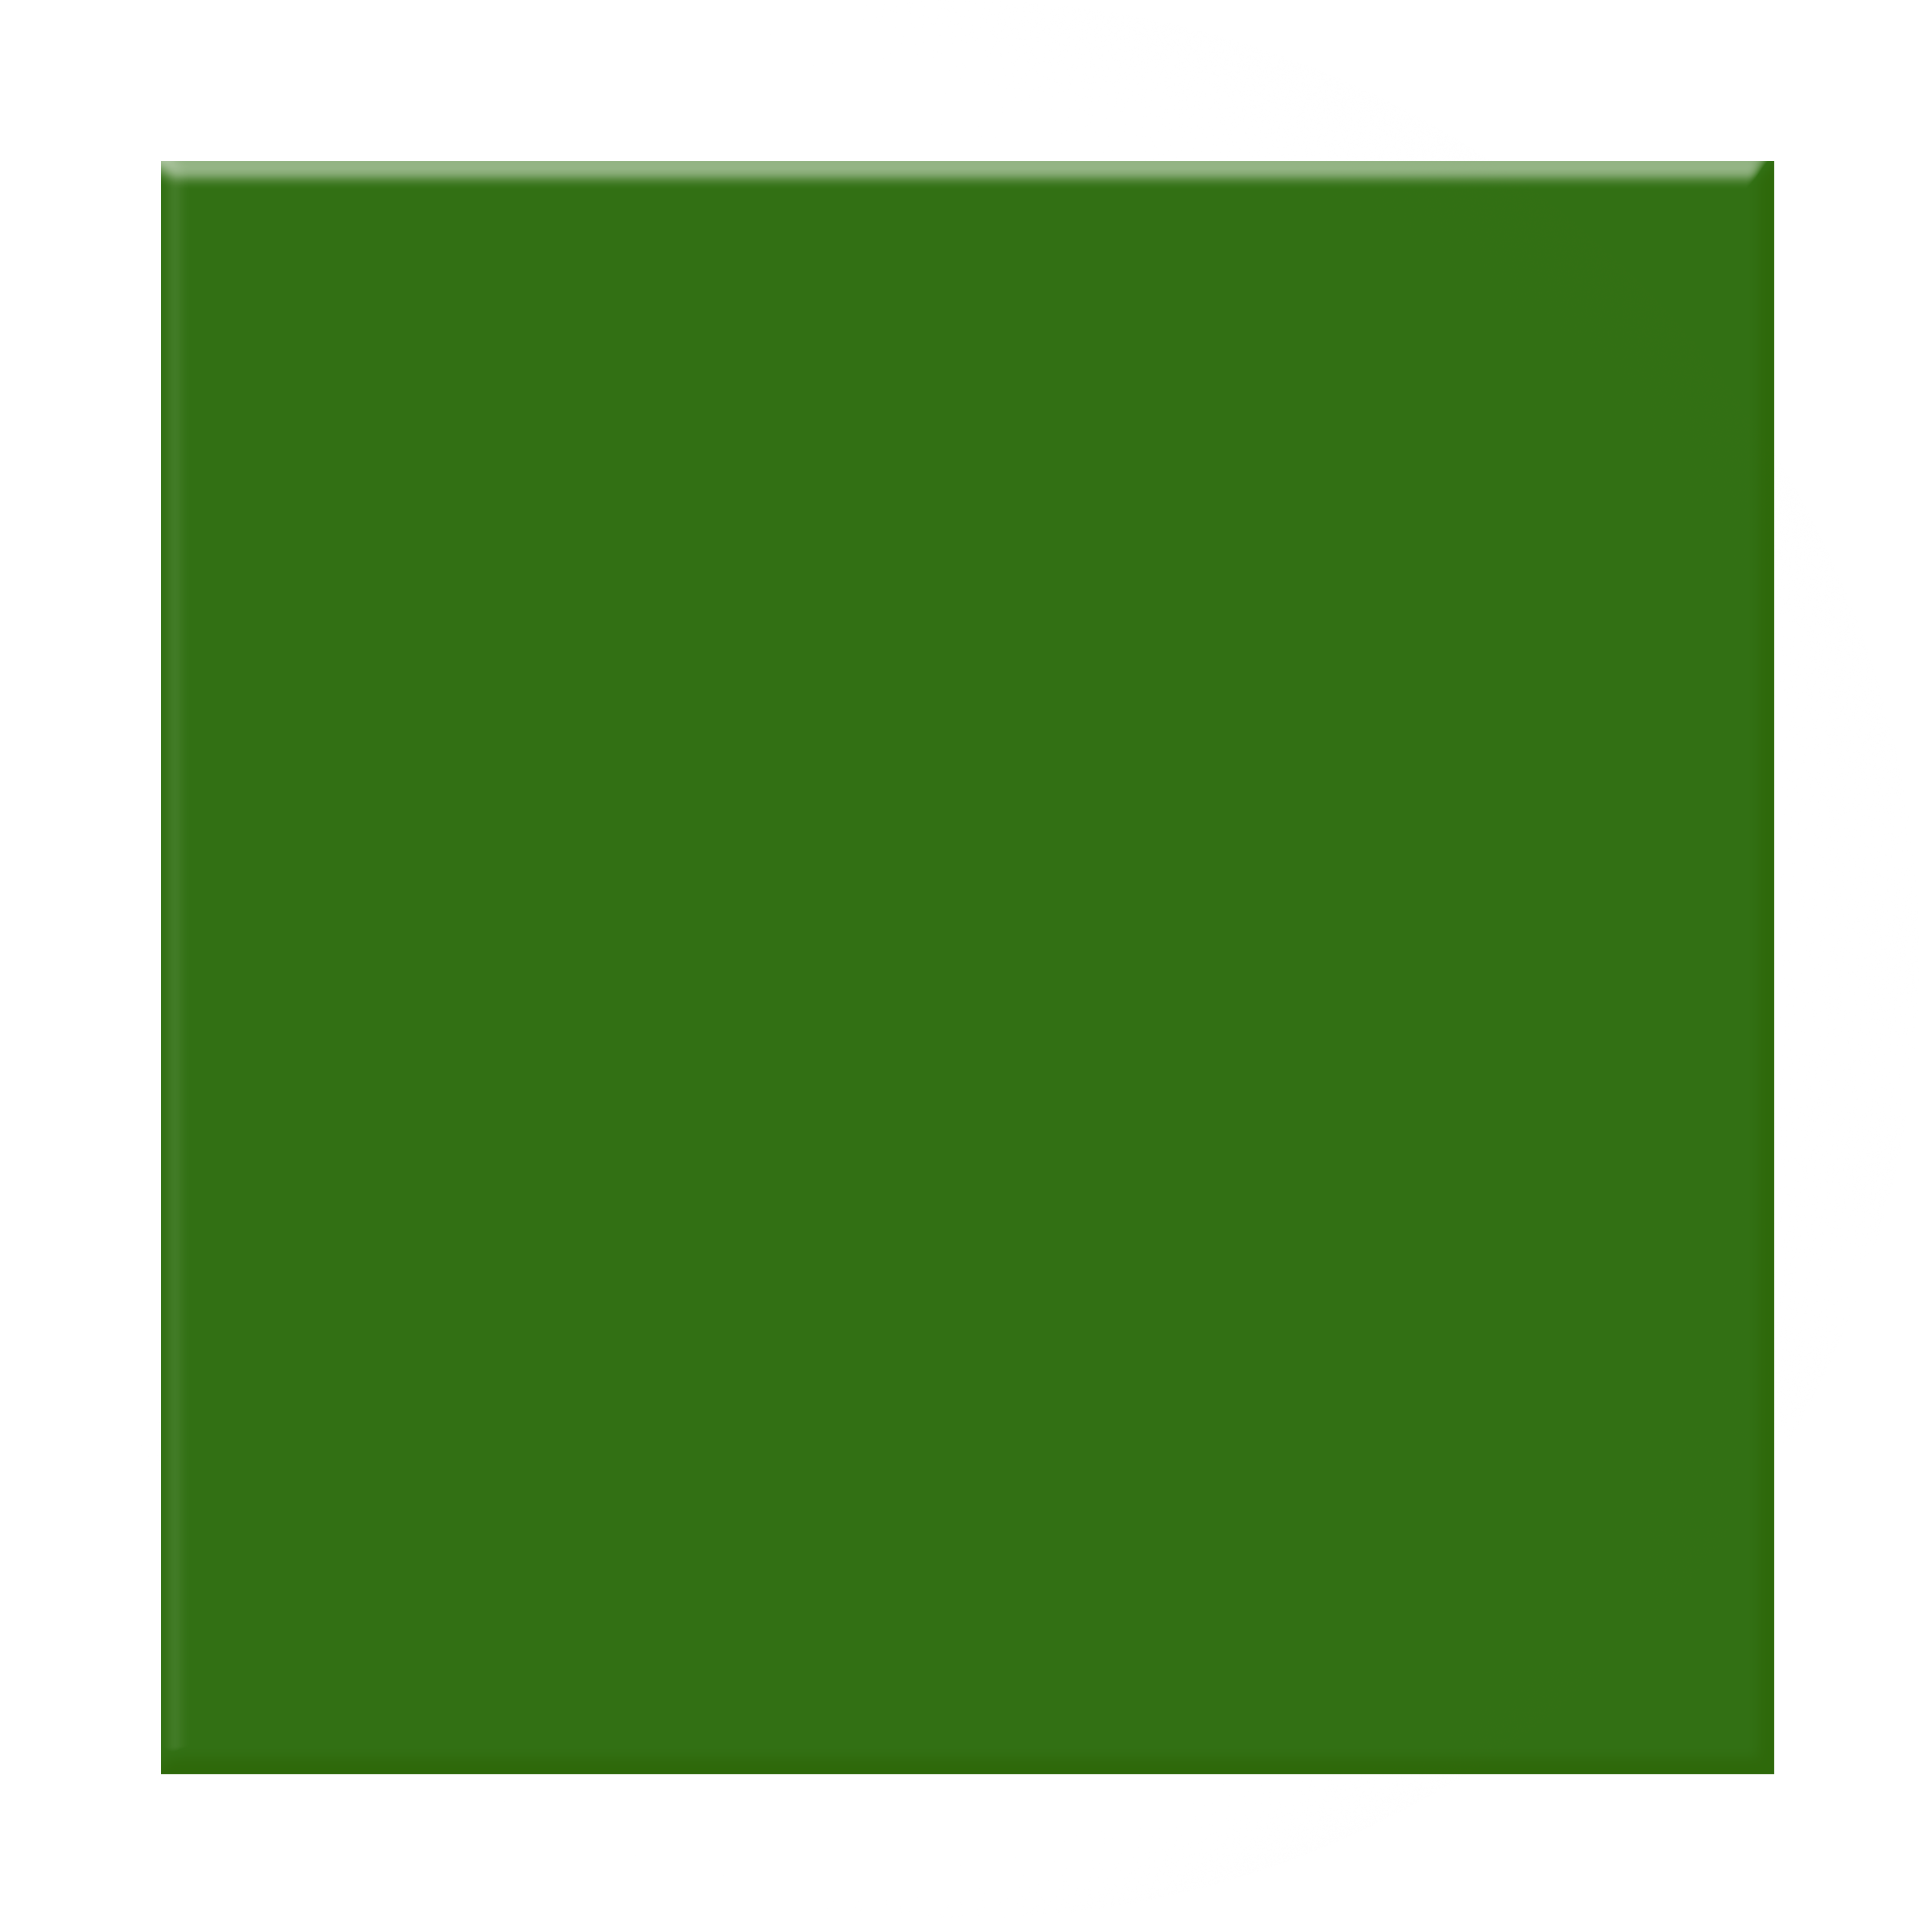 Green Square   Free Images At Clker Com   Vector Clip Art Online